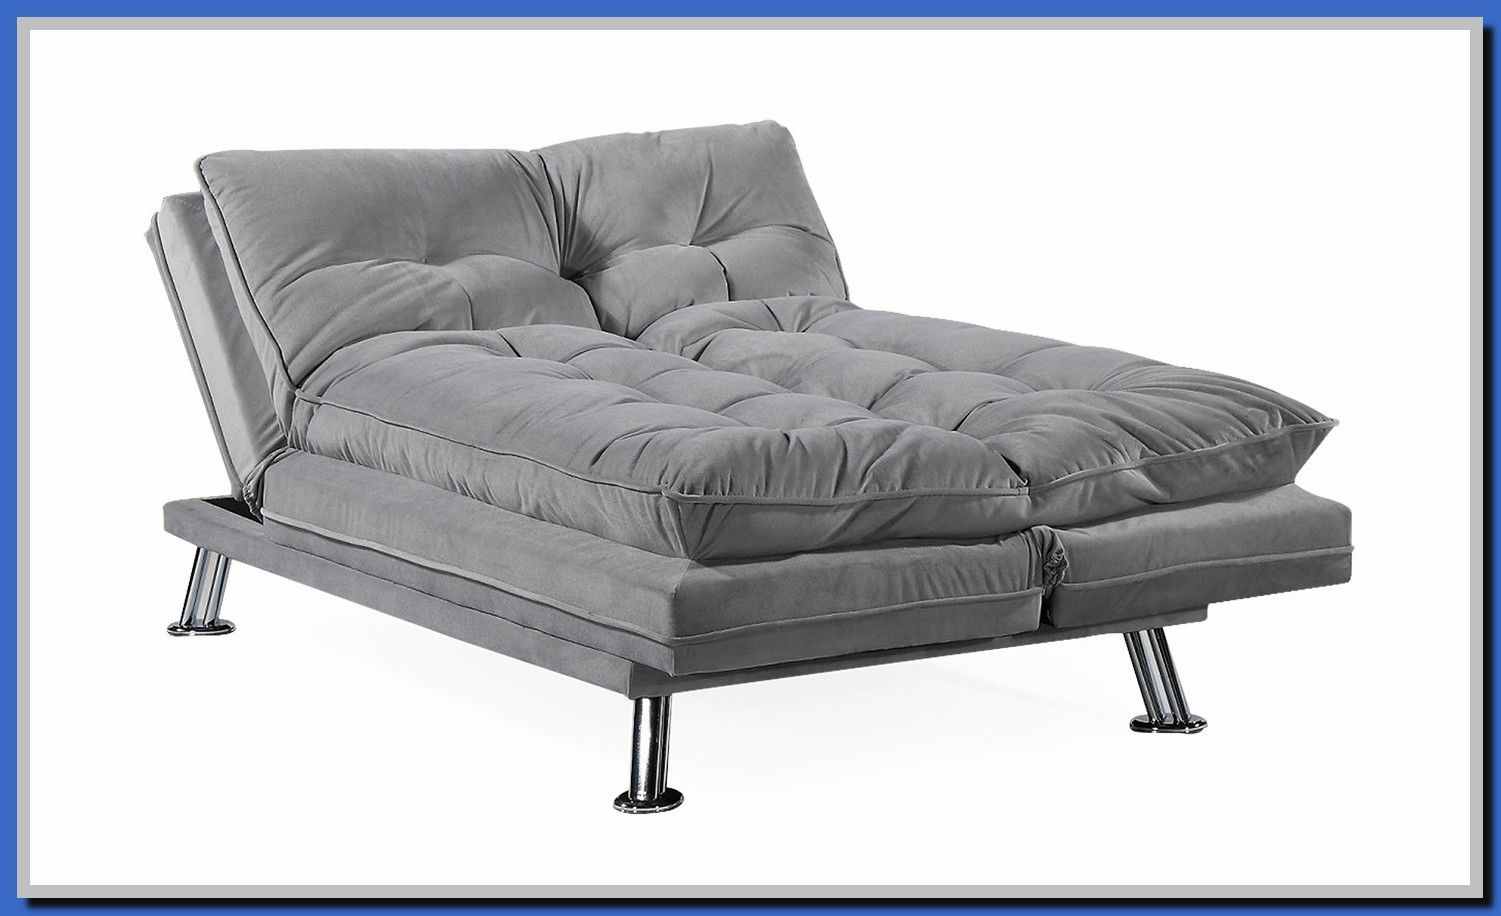 54 Small Velvet Sofa Bed Uk Small Velvet Sofa Bed Uk Please Click Link To Find More Reference Enjoy